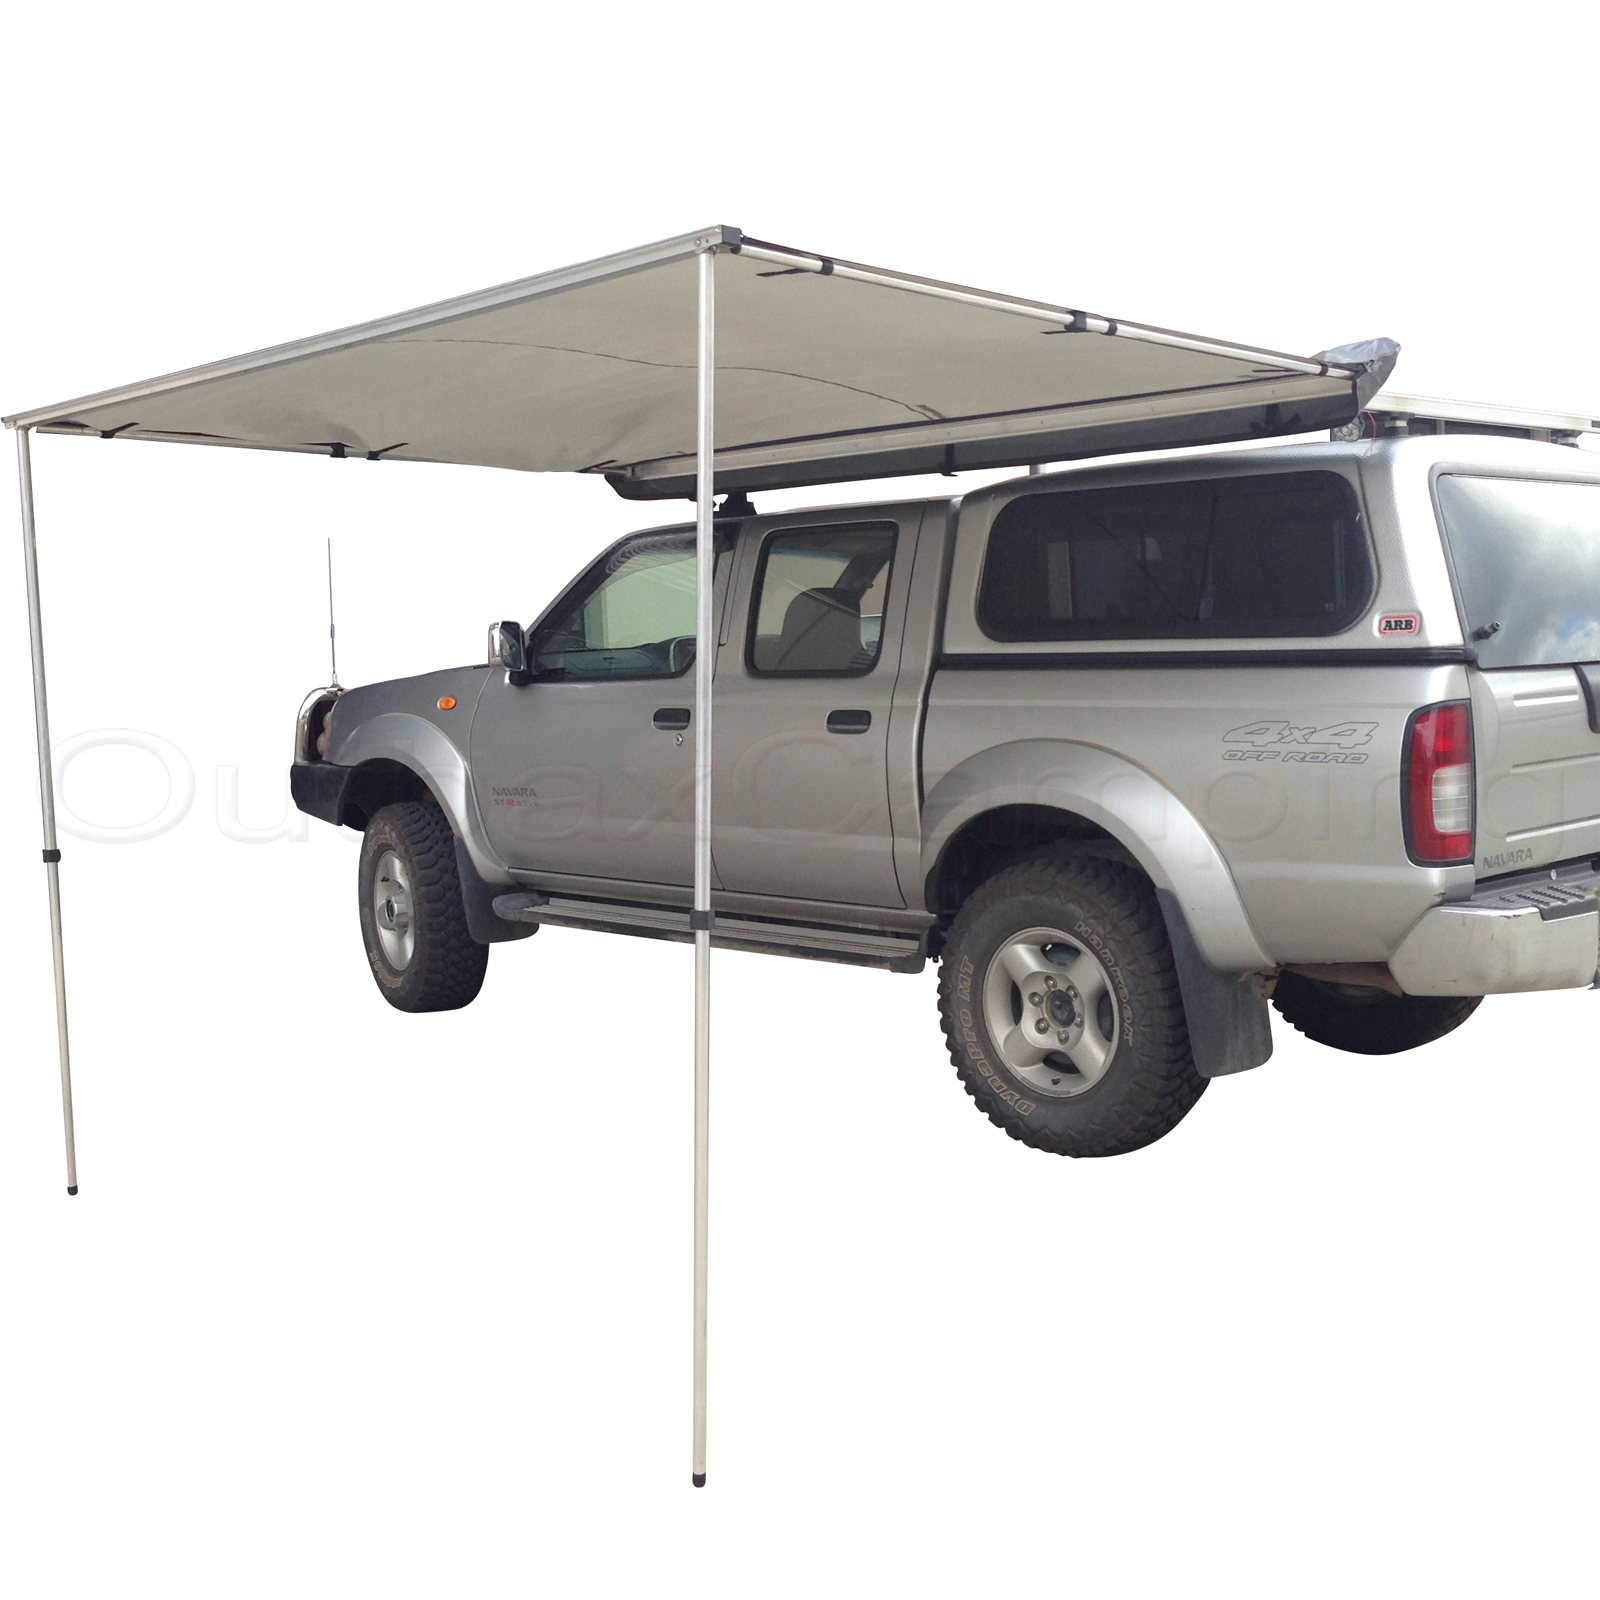 2 5m Awning Roof Top Tent Camper Trailer 4wd 4x4 Side